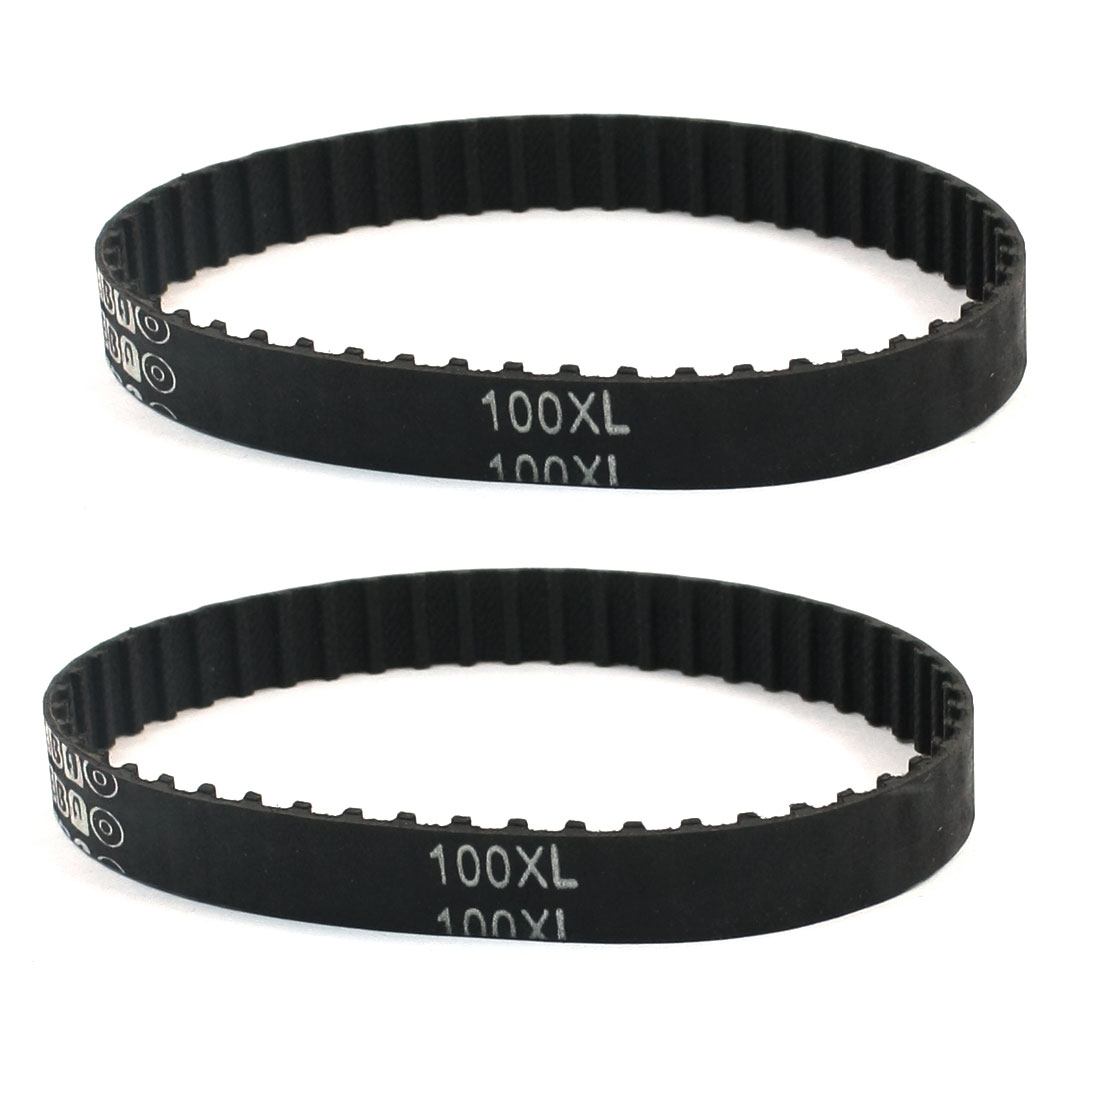 "Replacement 100XL 10"" Girth 5.08mm Pitch 50-Teeth Black Rubber Cogged Industrial Synchro Machine Timing Belt 2Pcs"